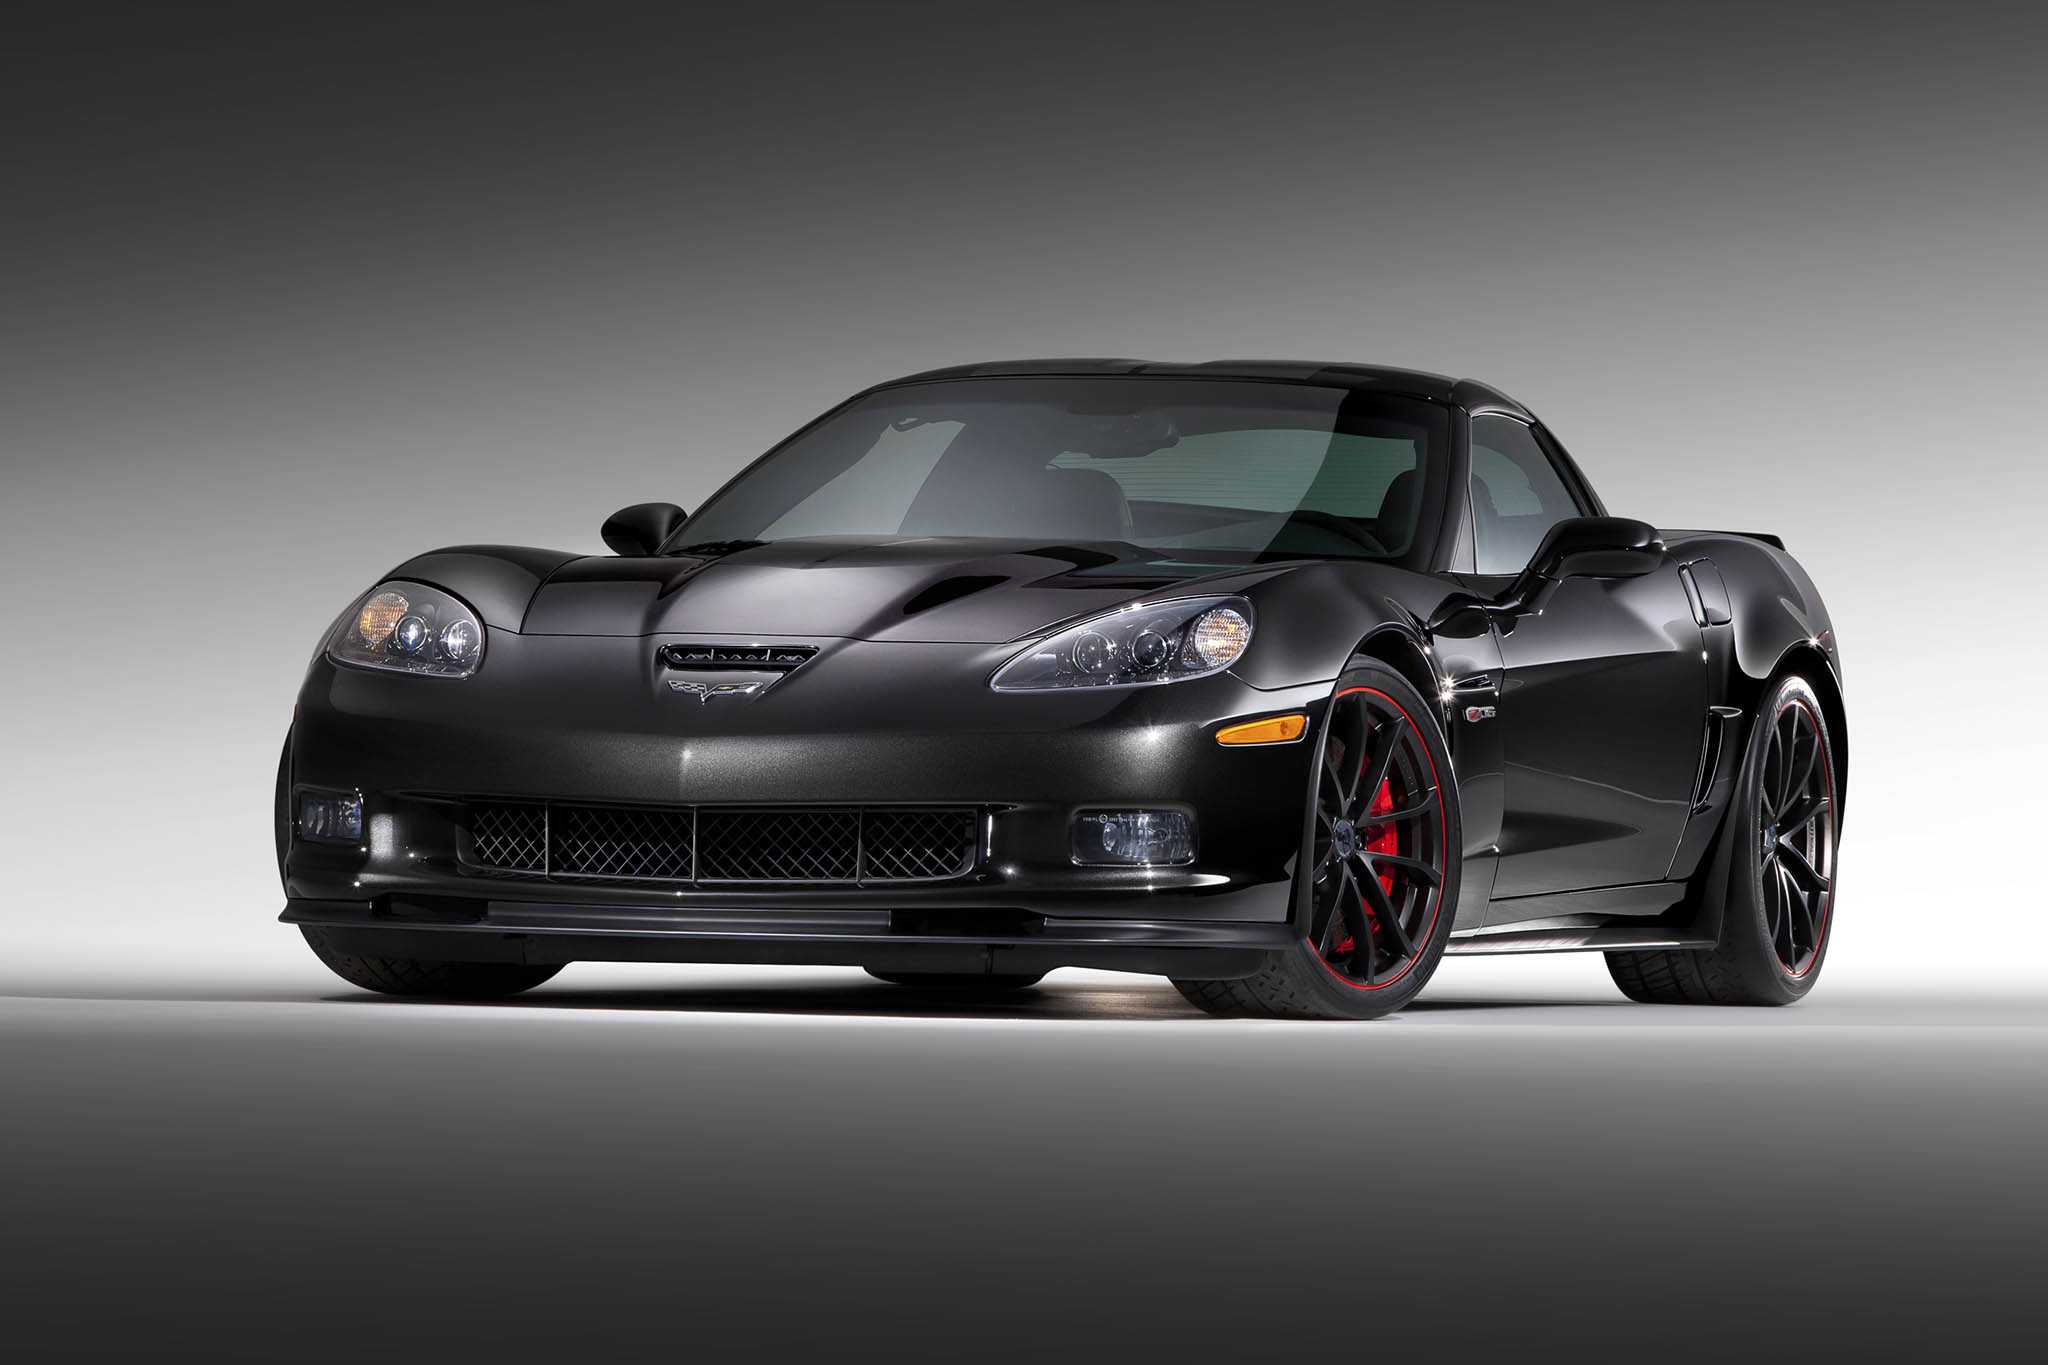 Merveilleux Autoweb 2015 May Feature High Performance Corvettes 2012